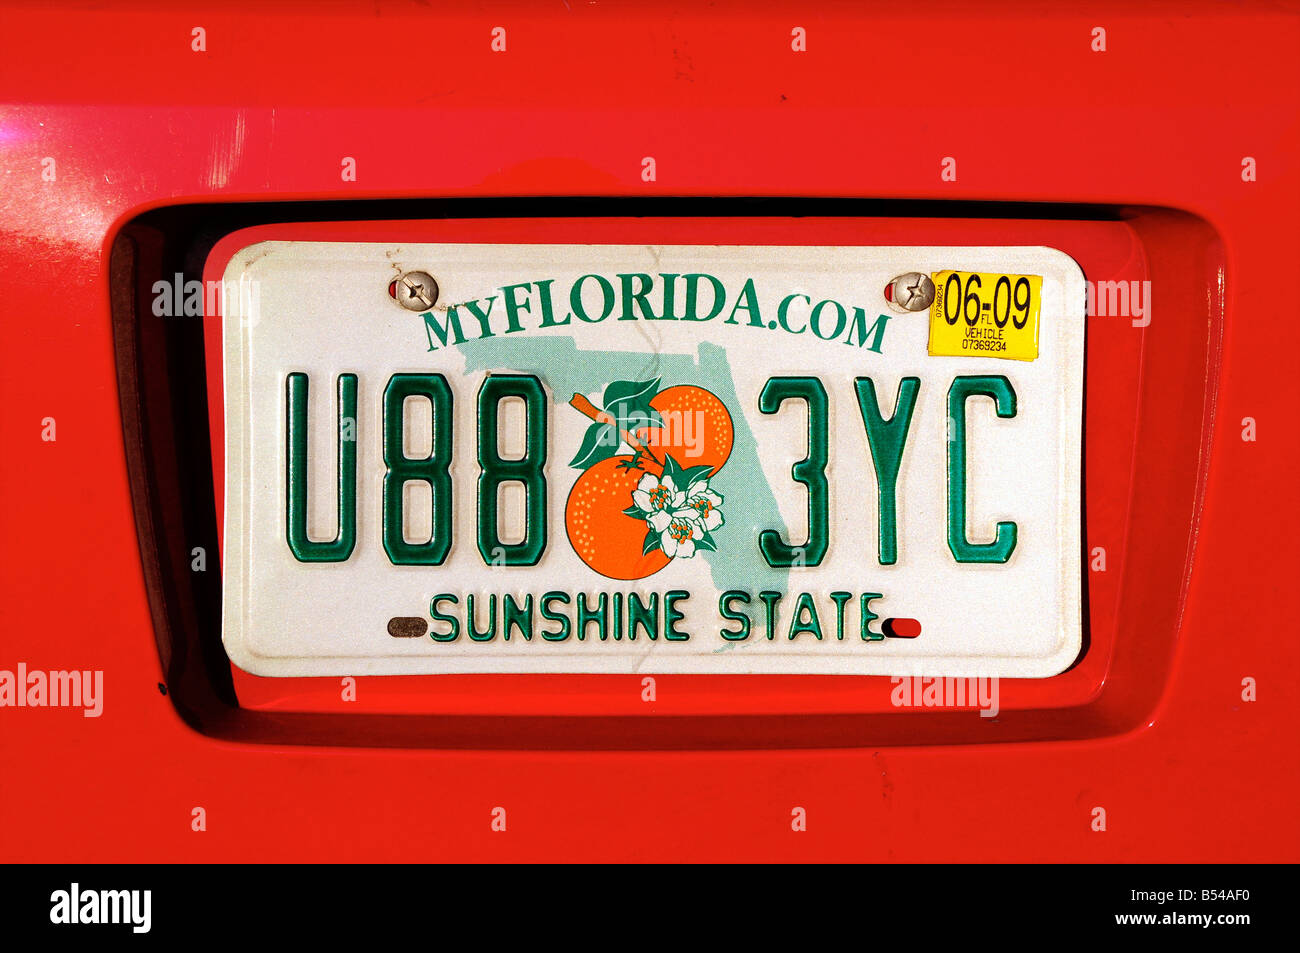 Florida car number plate, USA - Stock Image